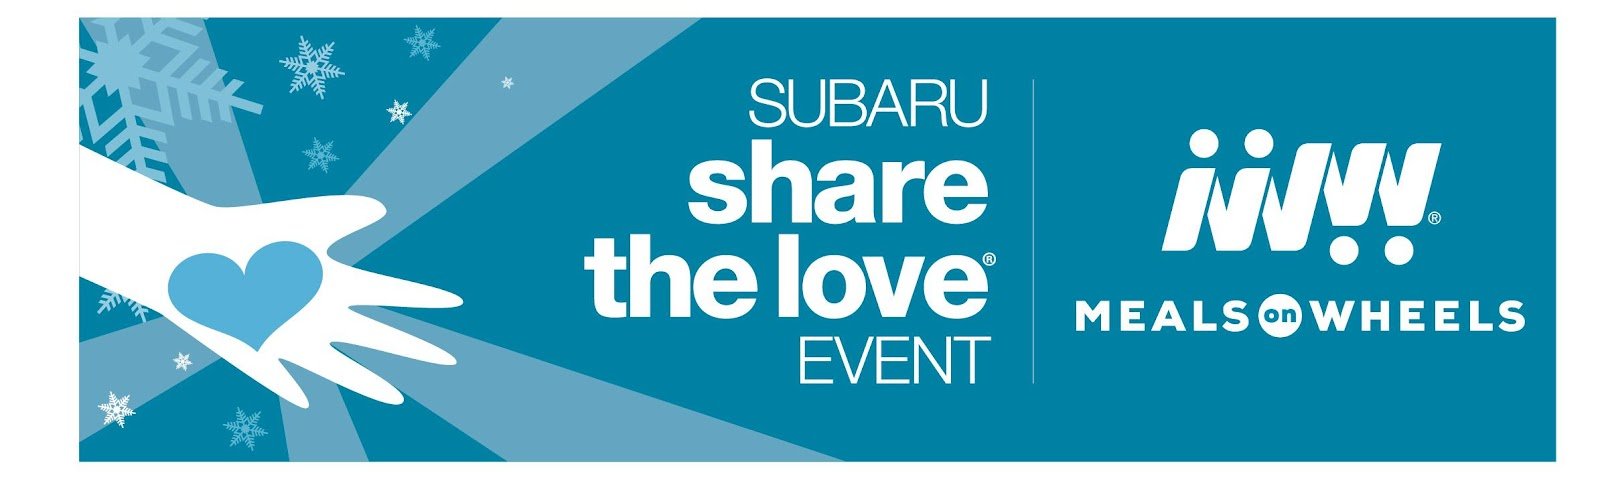 N:\Development\2018\Corporate - CURRENT ONLY\Subaru\Share the Love\2018 -19 STL\Toolkit\Final\STL_Banner_100518_v01.jpg